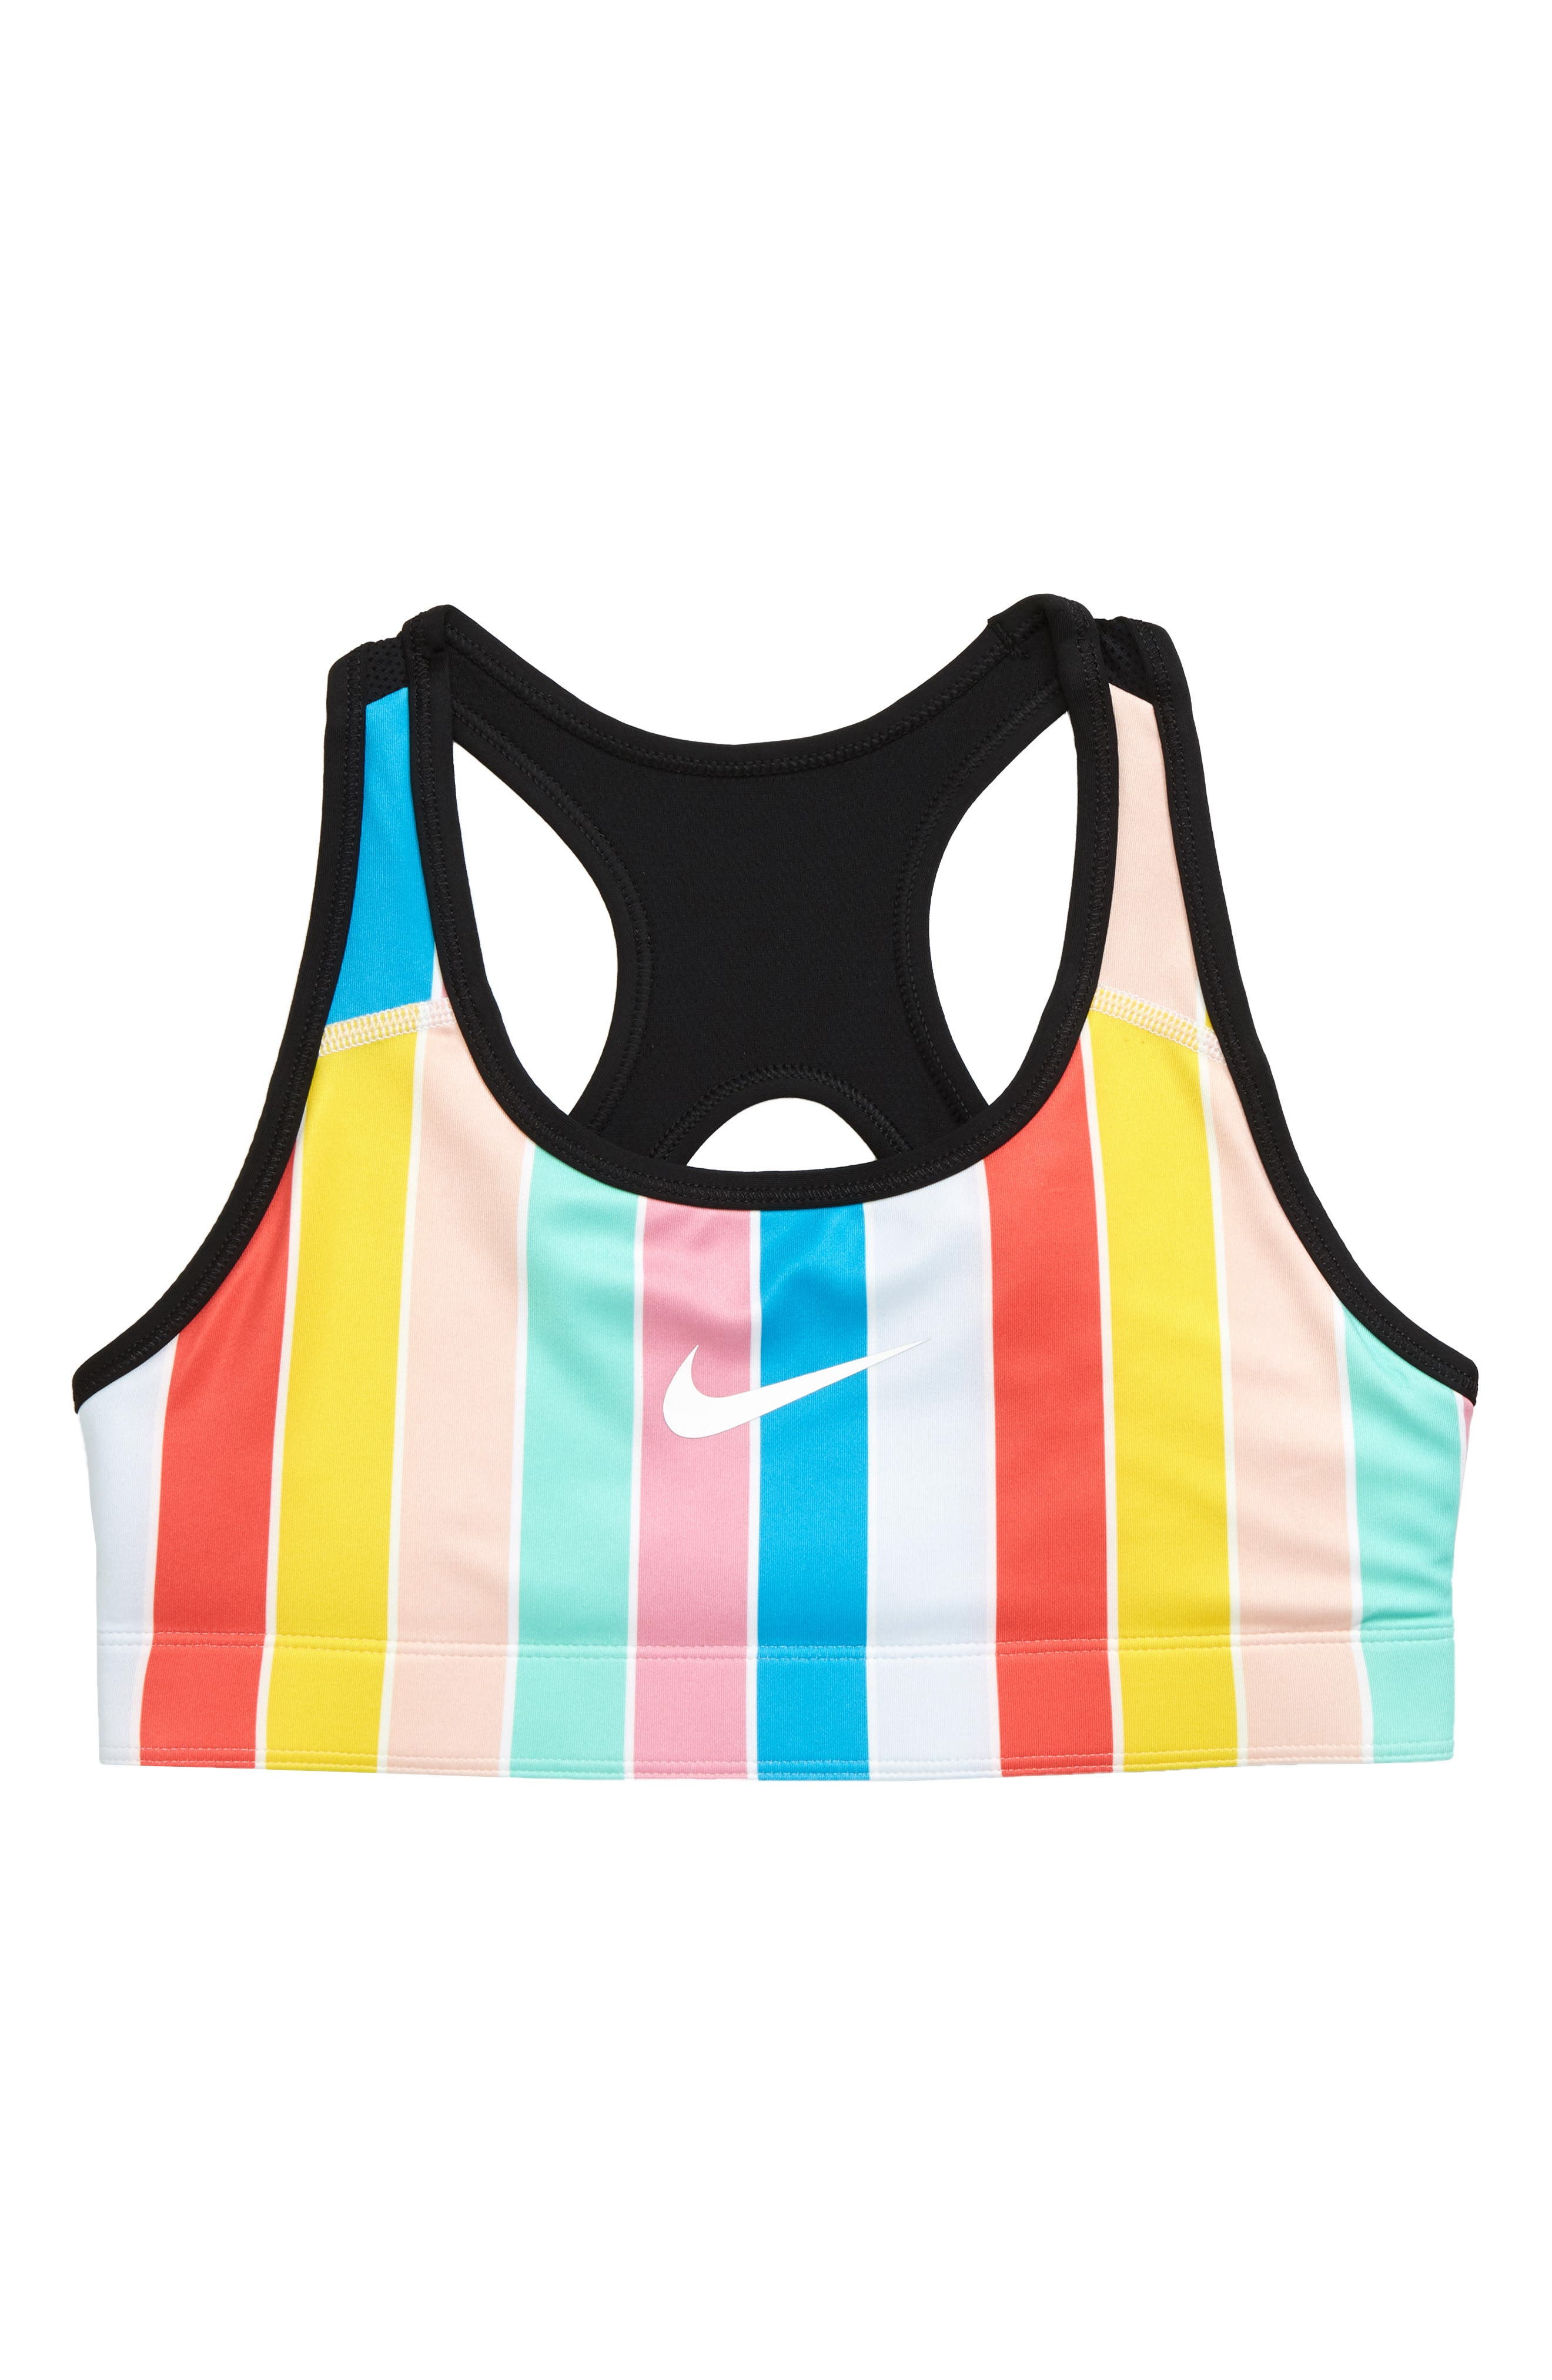 New Nike Girls Dri-Fit Racerback Sports Bra Size Small and Large MSRP $30.00